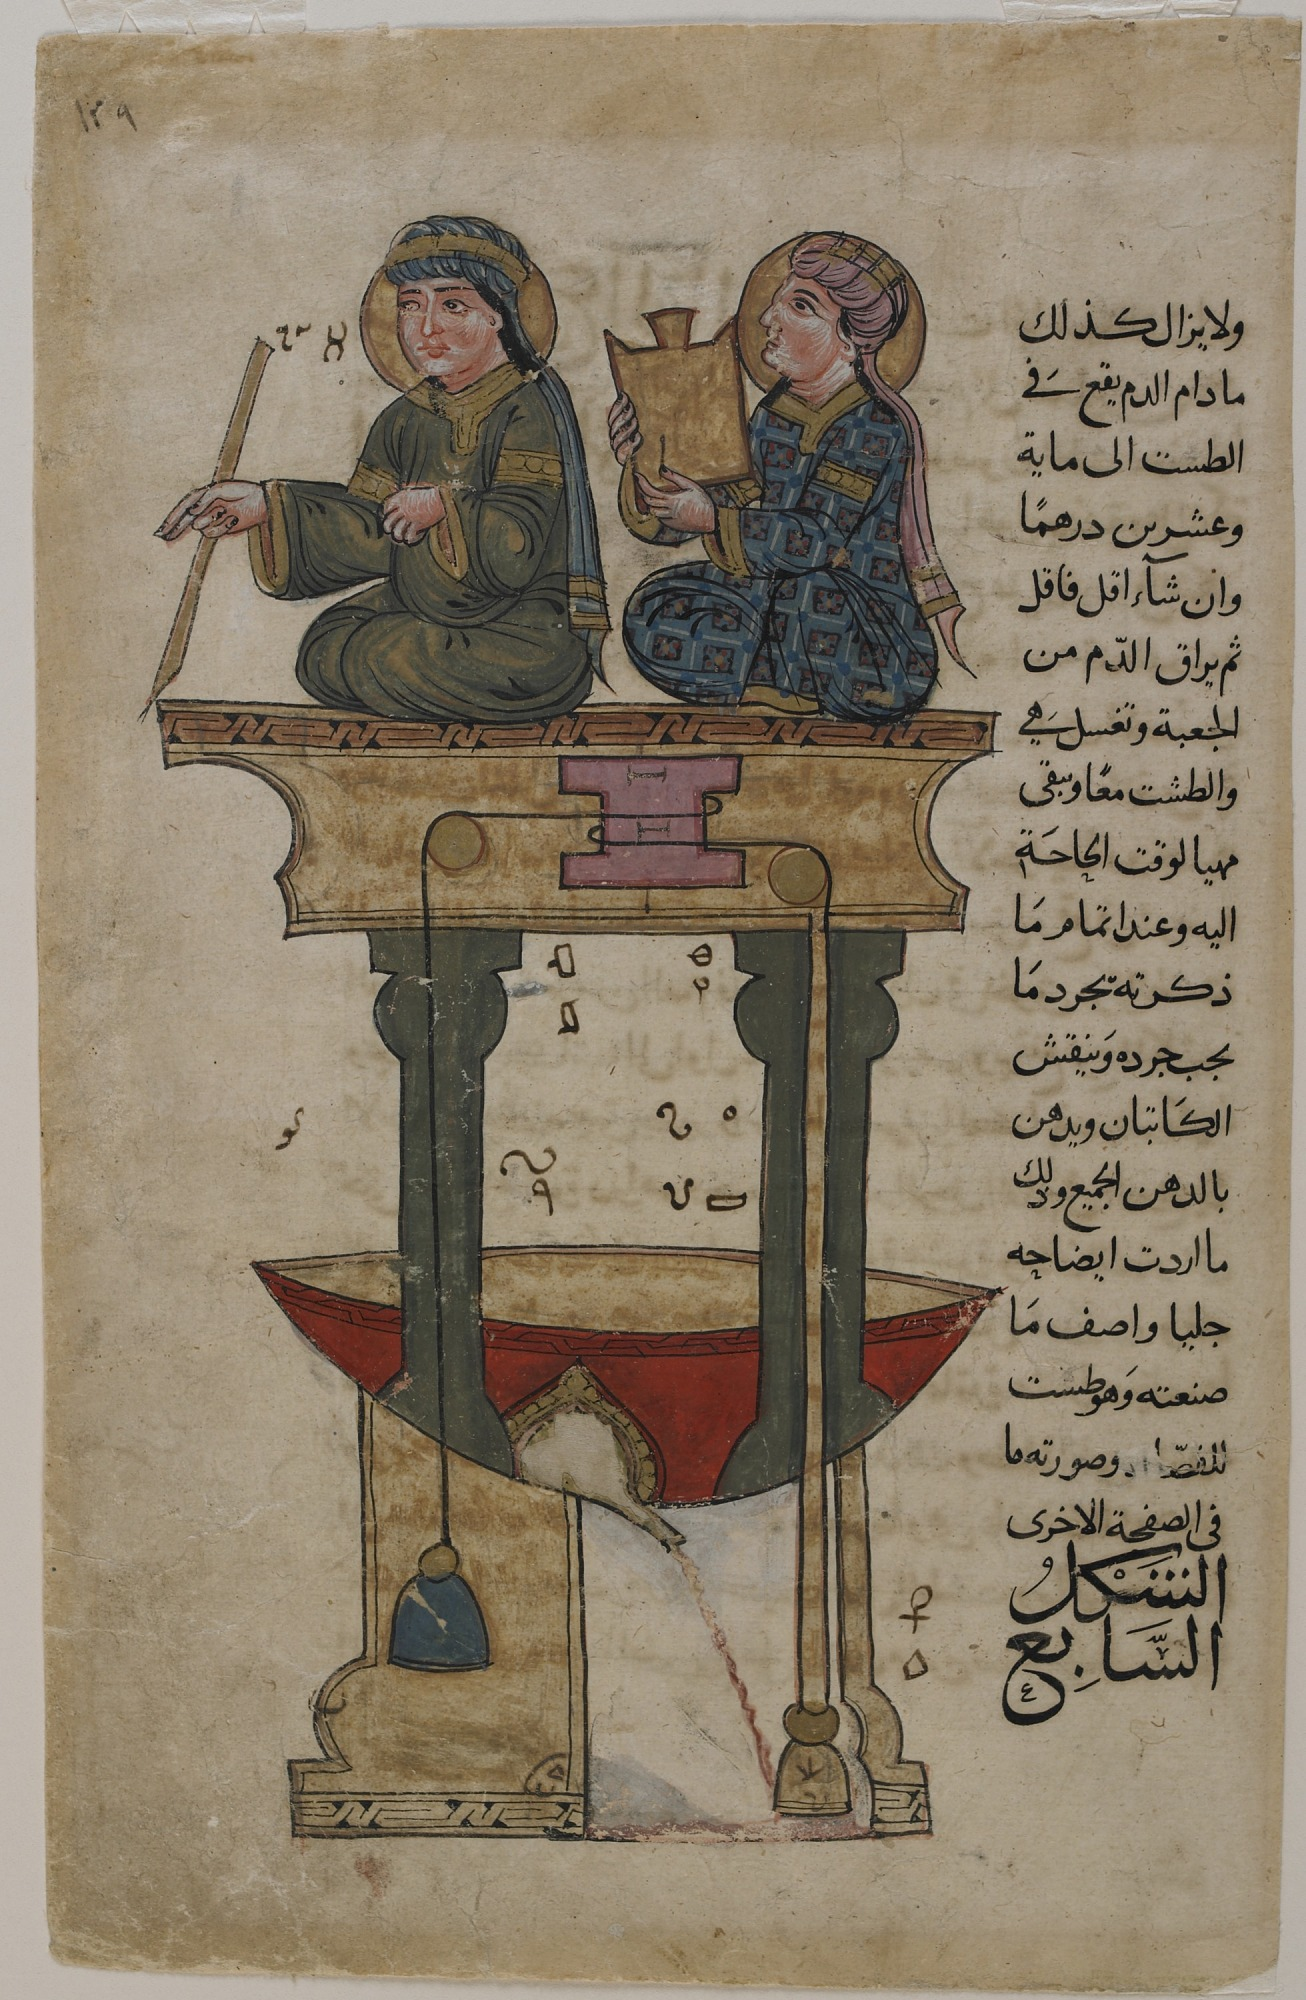 Folio from Kitab fi ma`arifat al-hiyal al-handisaya (The book of knowledge of ingenious mechanical devices) Automata by al-Jazari (d.1206); recto: illustration: The basin of the two scribes; verso: text